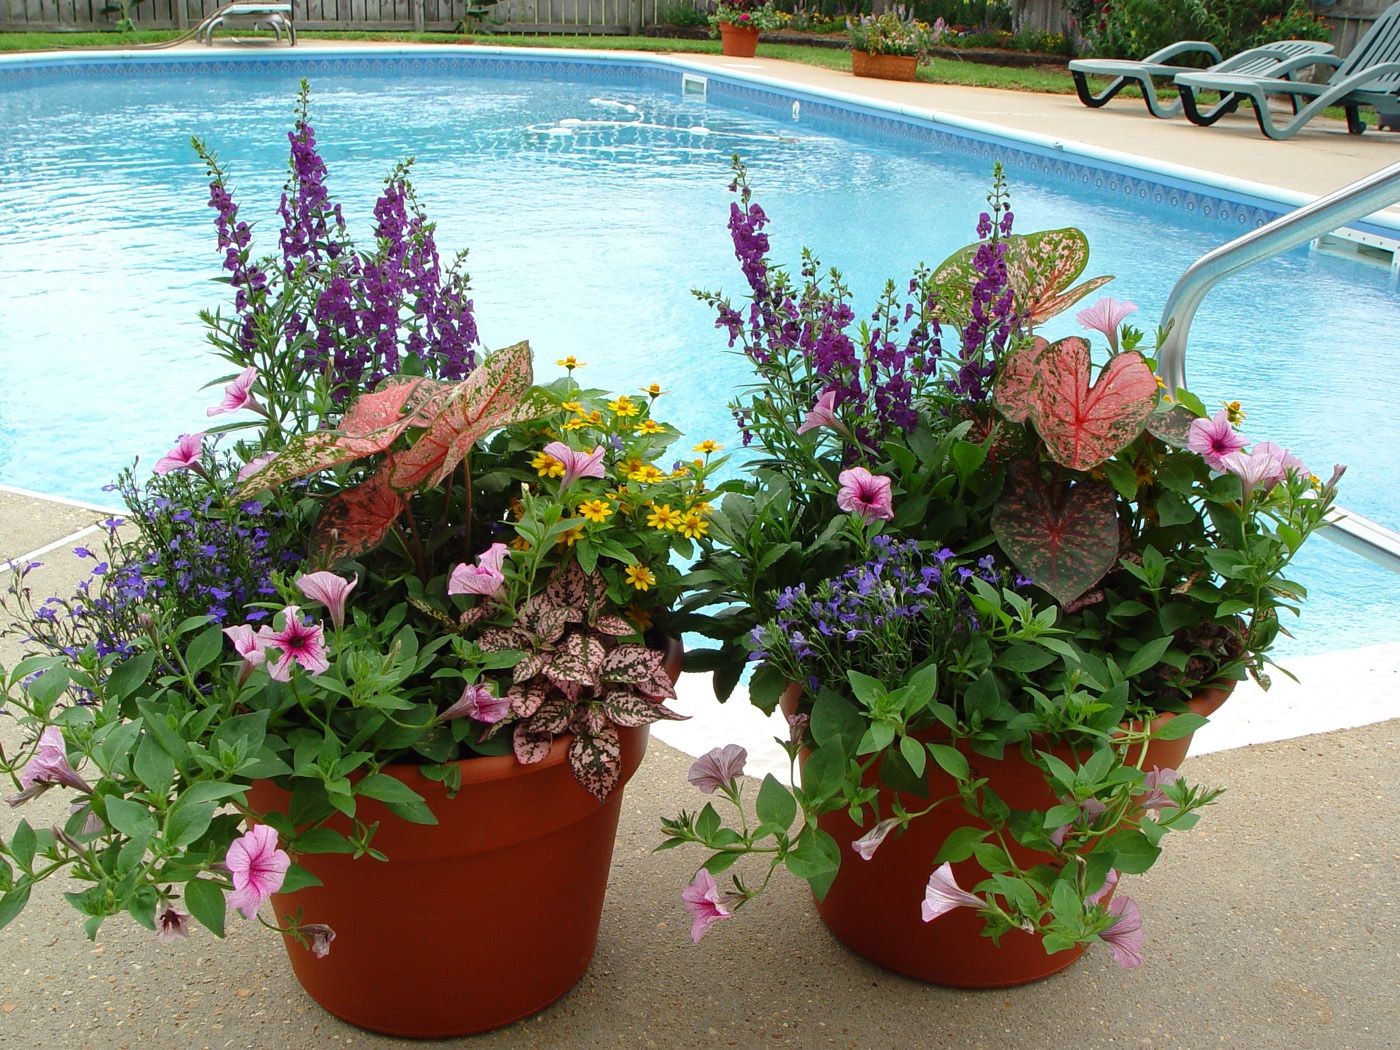 container gardening ideas with various flowers twin container gardening ideas beside the pool container gardening pictures to see more cool container - Flower Garden Ideas In Pots